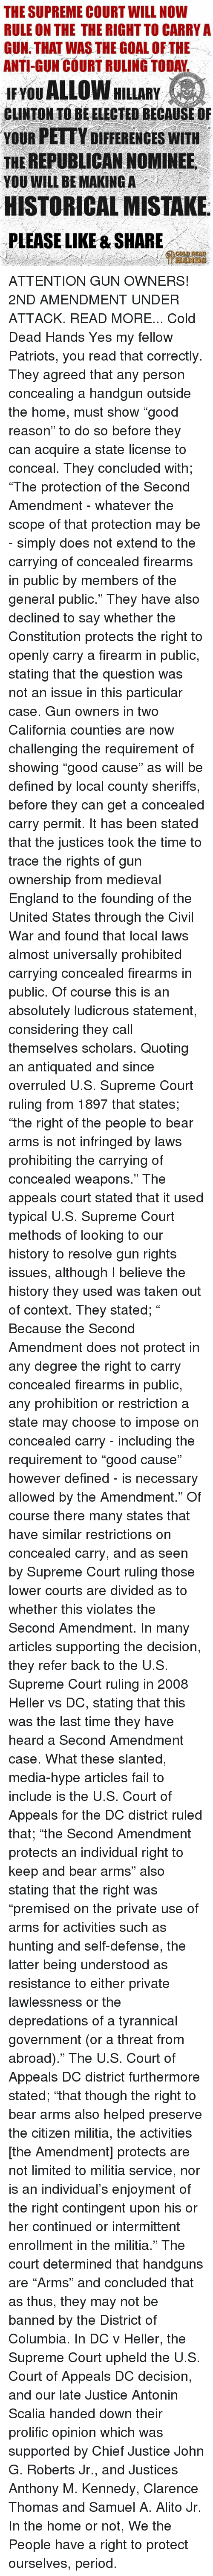 """Antonin Scalia: THE SUPREME COURT WILL NOW  RULE ON THE THE RIGHT TO CARRY A  GUN THAT WAS THE GOAL OF THE  ANTI-GUN COURT RULING TODAY  ALLOW HILLARY  IF YOU  CLINTON TO BE ELECTED BECAUSE OF  YOUR PETTY DIFFERENCES WITH  THE REPUBLICAN NOMINEE  YOU WILL BE MAKING A  HISTORICAL MISTAKE  PLEASE LIKE & SHARE ATTENTION GUN OWNERS! 2ND AMENDMENT UNDER ATTACK. READ MORE... Cold Dead Hands  Yes my fellow Patriots, you read that correctly. They agreed that any person concealing a handgun outside the home, must show """"good reason"""" to do so before they can acquire a state license to conceal.  They concluded with; """"The protection of the Second Amendment - whatever the scope of that protection may be - simply does not extend to the carrying of concealed firearms in public by members of the general public.""""  They have also declined to say whether the Constitution protects the right to openly carry a firearm in public, stating that the question was not an issue in this particular case.  Gun owners in two California counties are now challenging the requirement of showing """"good cause"""" as will be defined by local county sheriffs, before they can get a concealed carry permit. It has been stated that the justices took the time to trace the rights of gun ownership from medieval England to the founding of the United States through the Civil War and found that local laws almost universally prohibited carrying concealed firearms in public. Of course this is an absolutely ludicrous statement, considering they call themselves scholars.  Quoting an antiquated and since overruled U.S. Supreme Court ruling from 1897 that states; """"the right of the people to bear arms is not infringed by laws prohibiting the carrying of concealed weapons.""""   The appeals court stated that it used typical U.S. Supreme Court methods of looking to our history to resolve gun rights issues, although I believe the history they used was taken out of context.  They stated; """" Because the Second Amendment does not protect"""